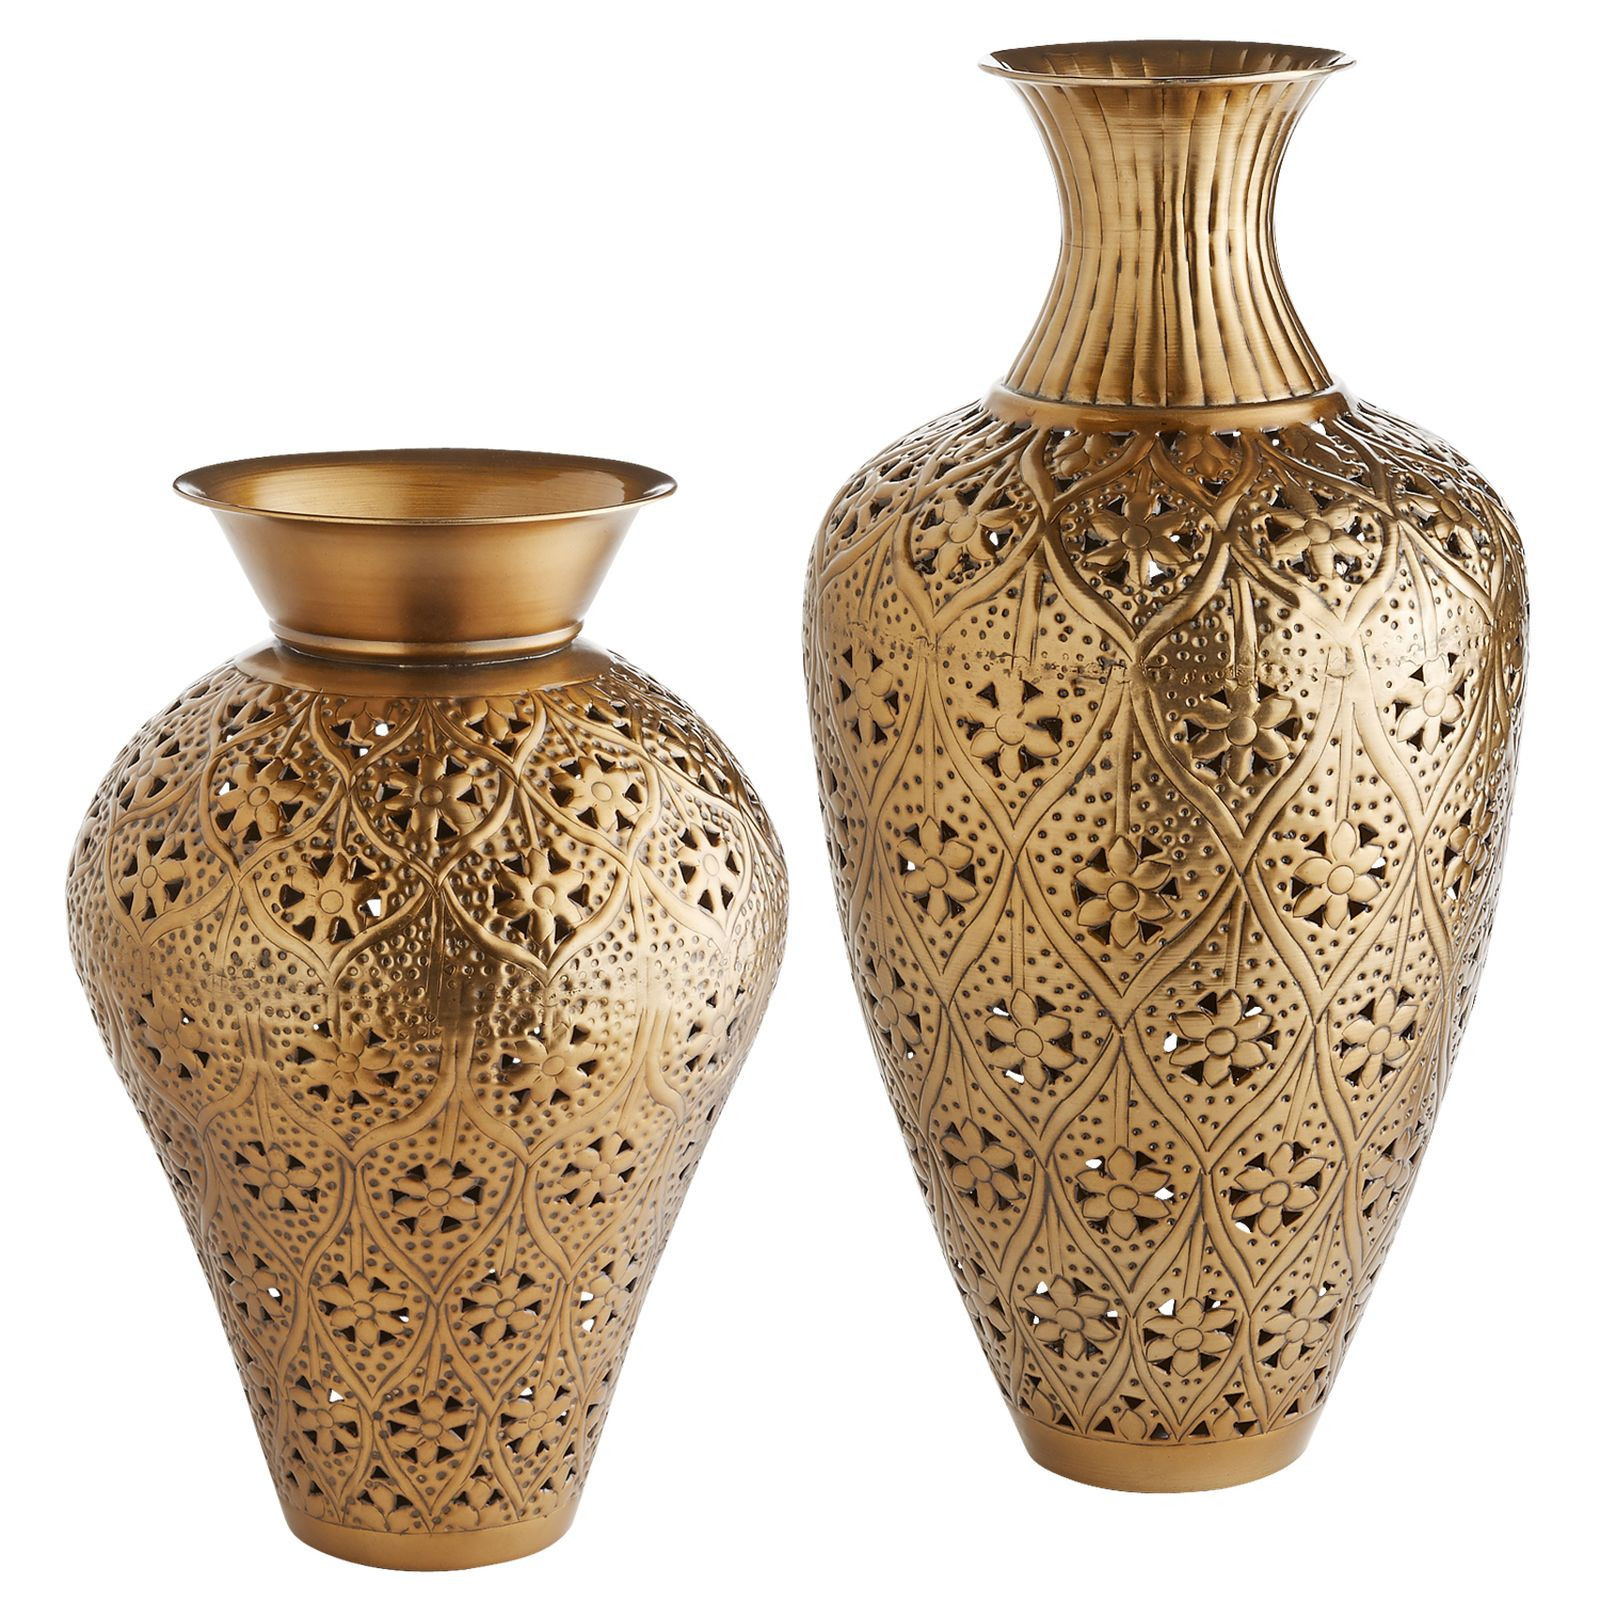 bronze tall floor vases of found the perfect additions to your diverse collection our within found the perfect additions to your diverse collection our unconventional vases evoke that bohemian